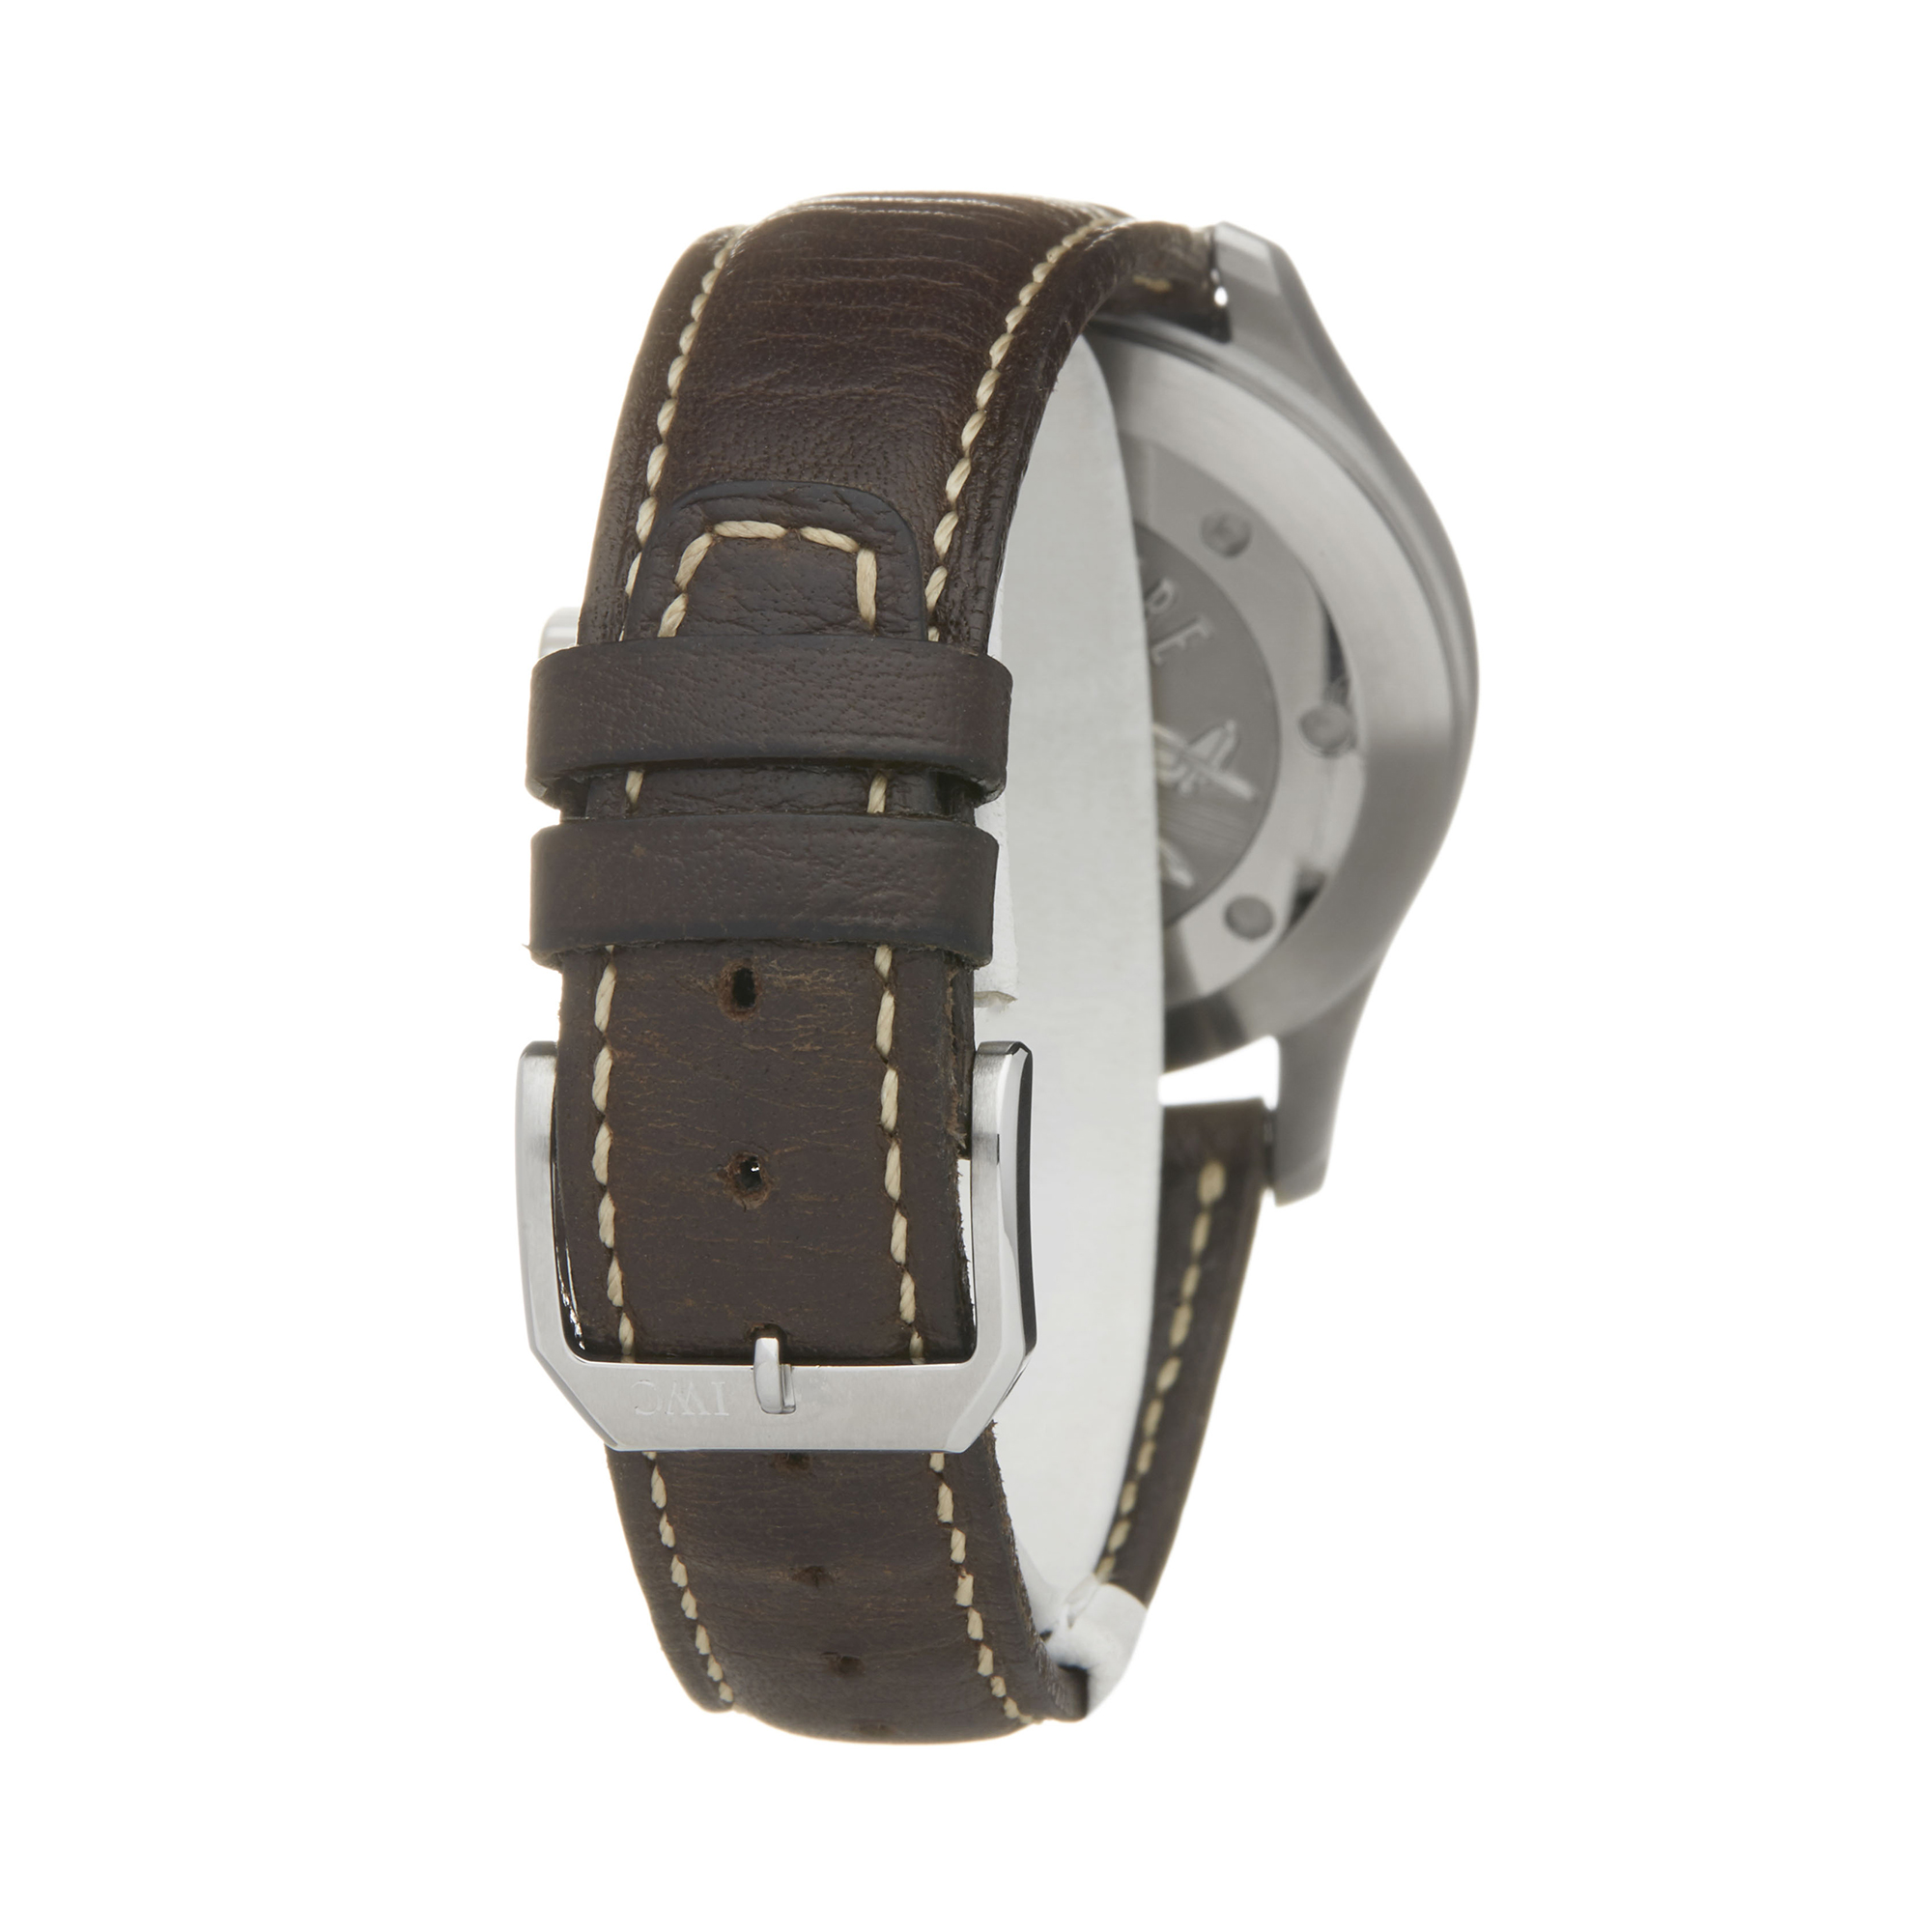 Pilot's Spitfire IW325305 Men Stainless Steel MK XV Limited Edition of 1000 pieces Watch - Image 6 of 10